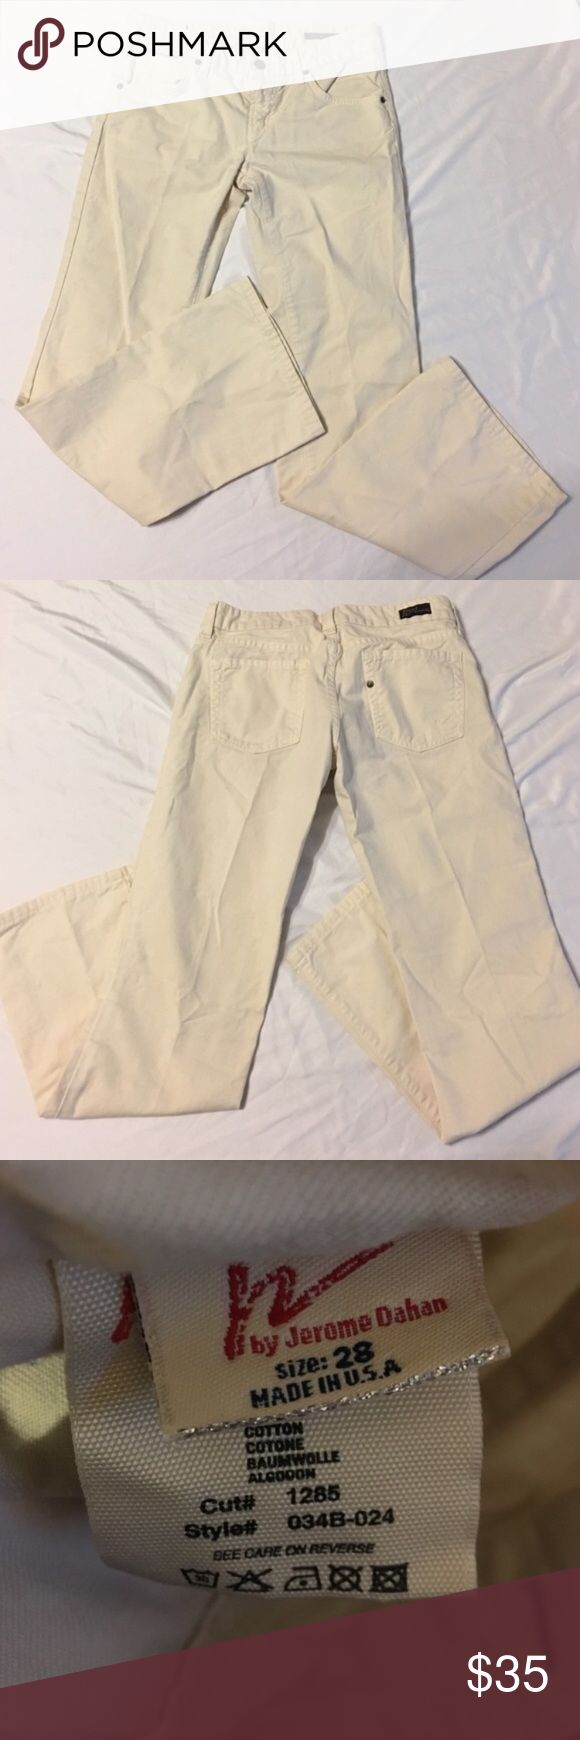 Citizens of Humanity Jeans Citizens of Humanity Jeans; size 28; from Anthropology. Box 7 Citizens Of Humanity Jeans